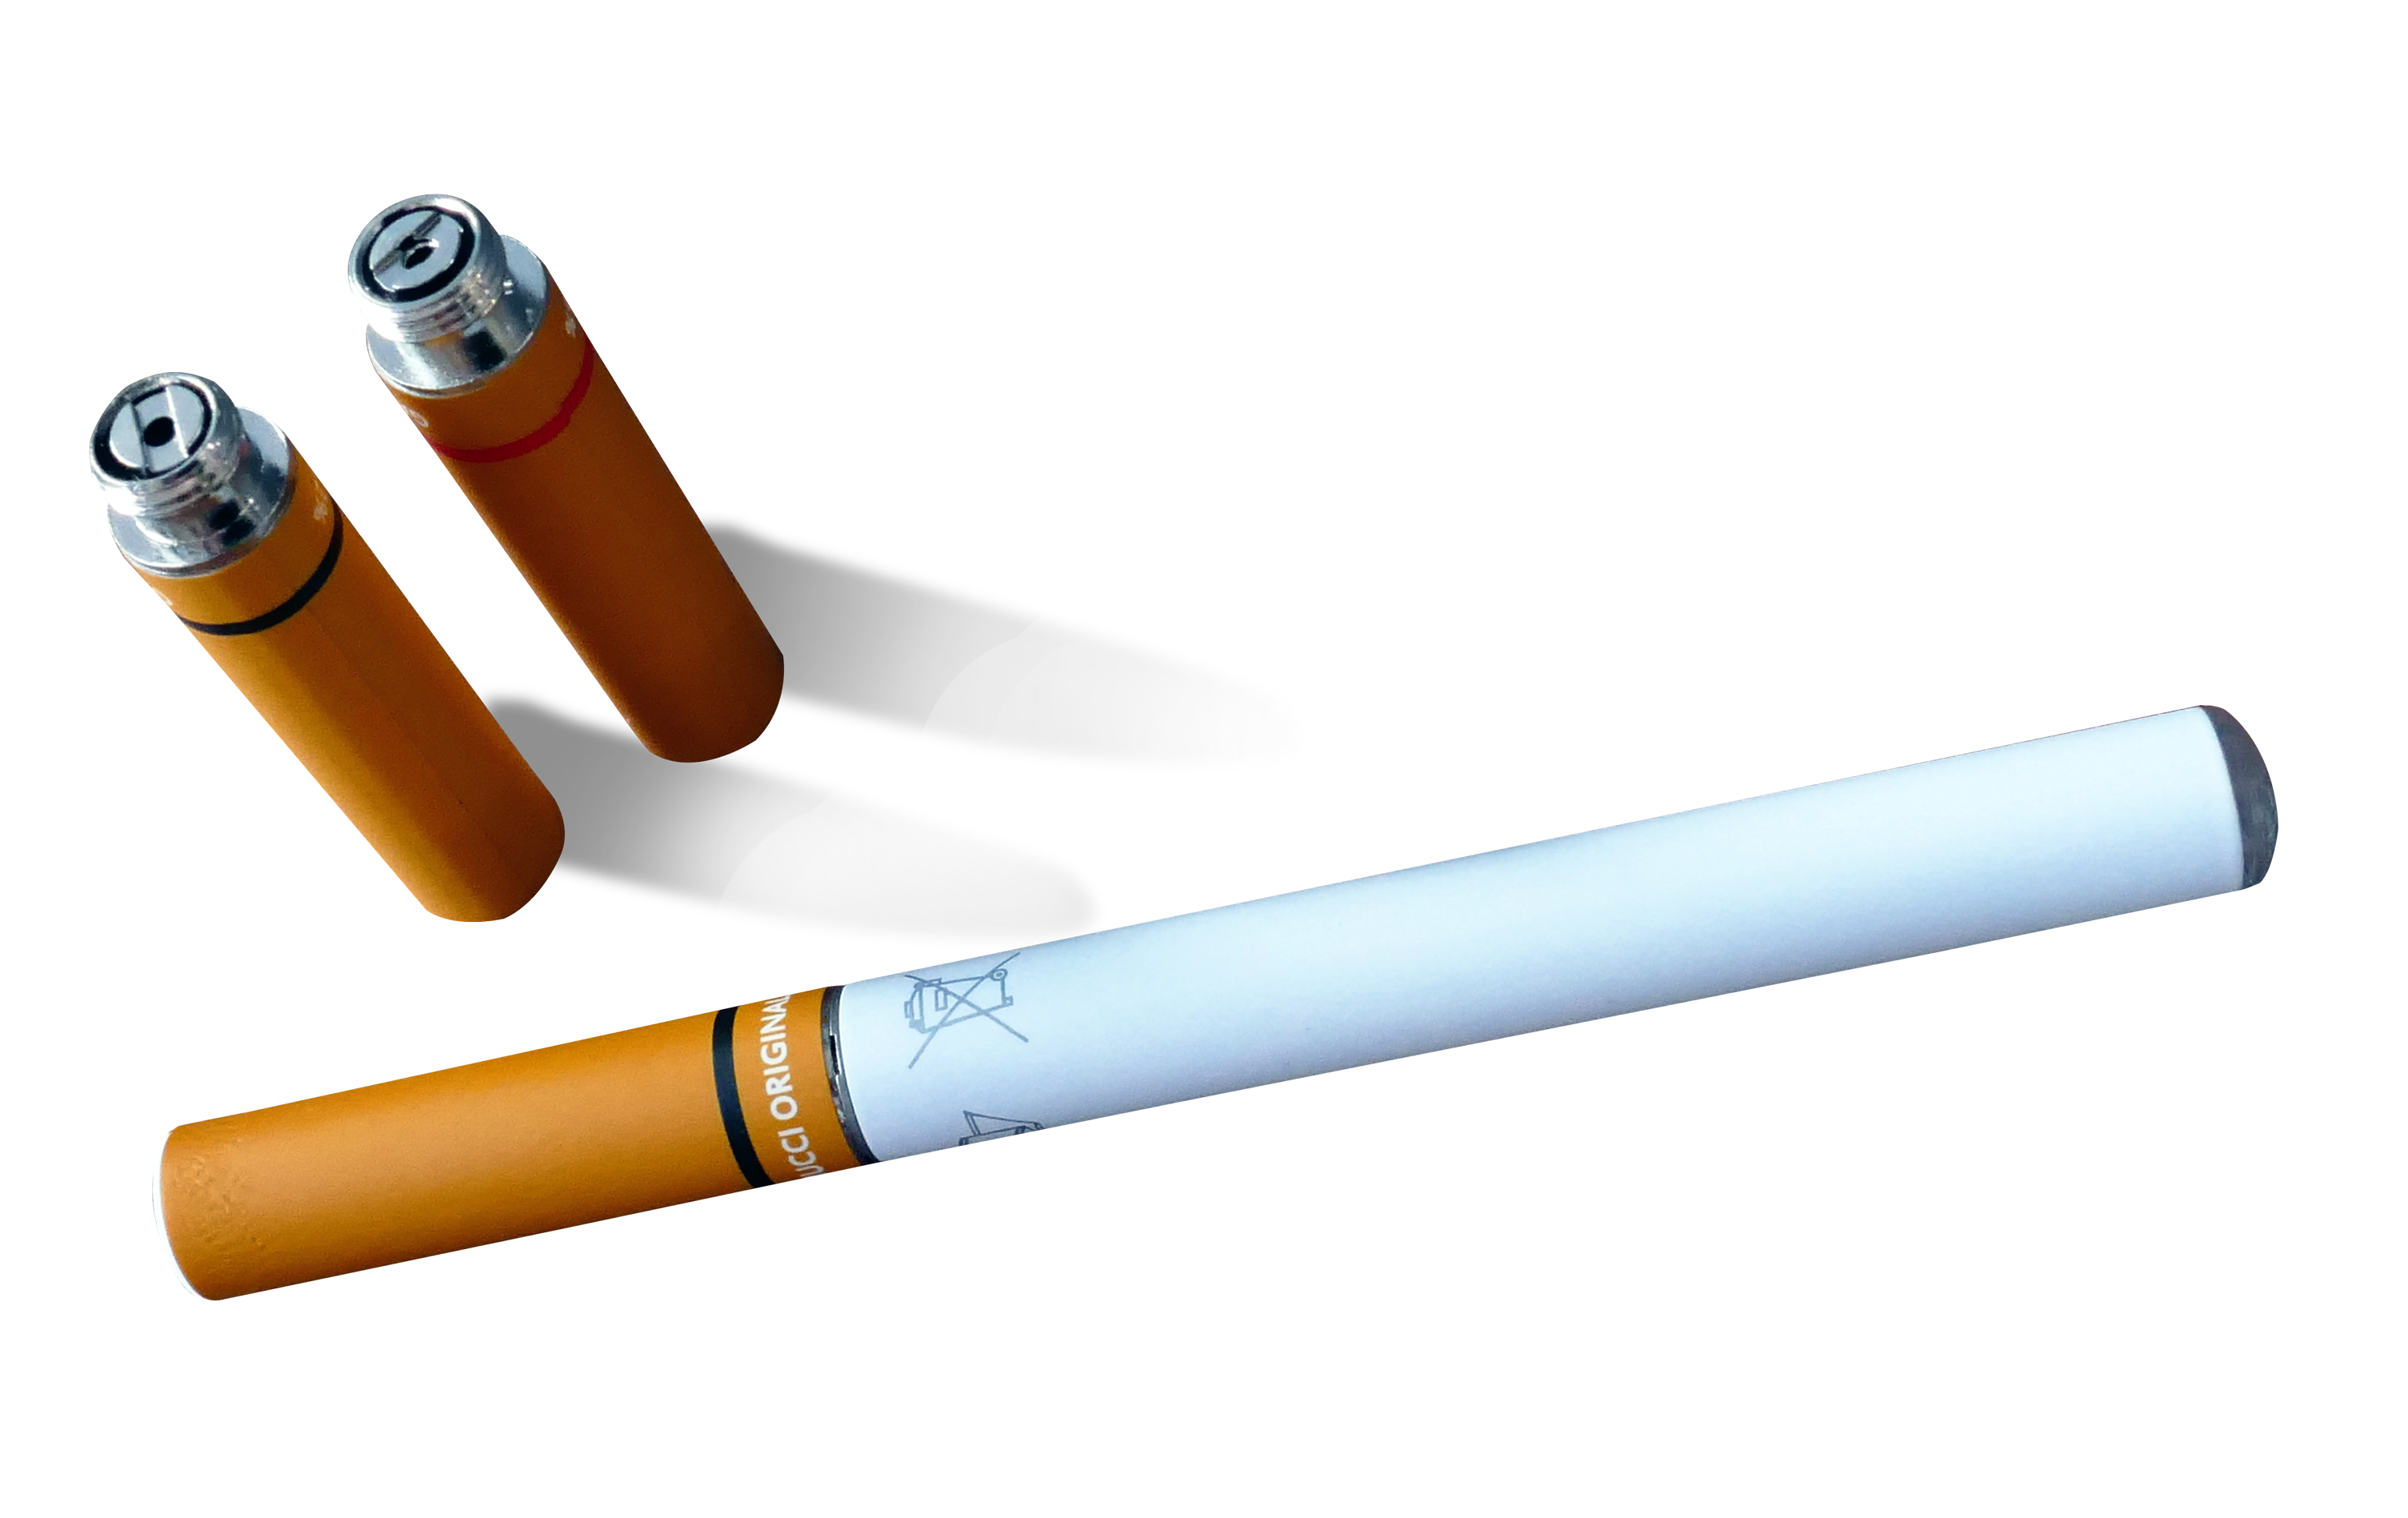 electronic cigarette png transparent image png #16448